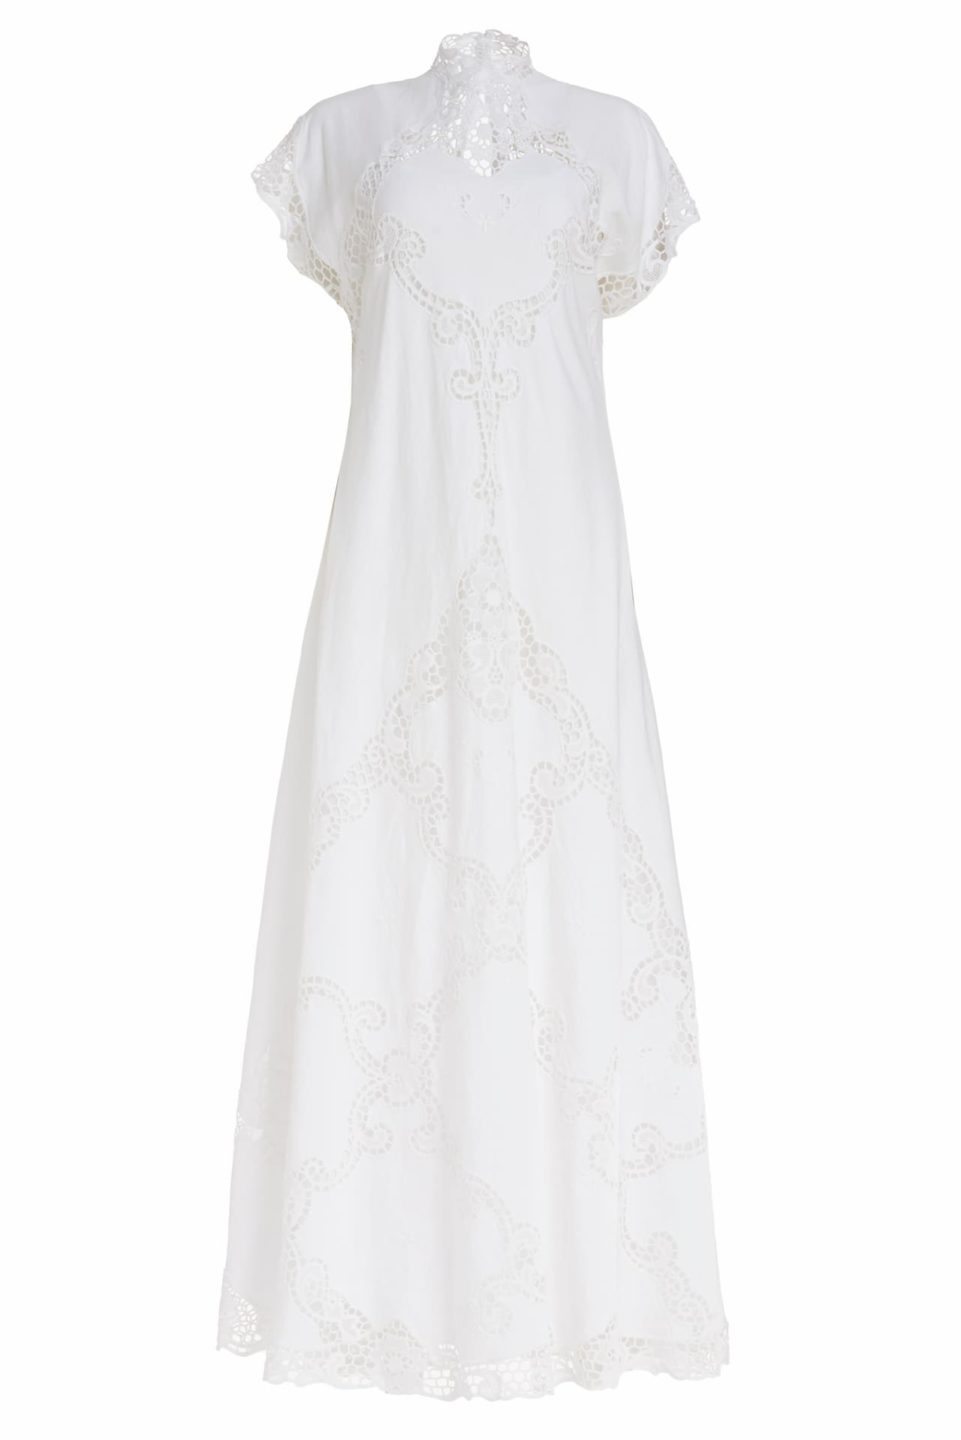 Alinna PR2014 white Linen Caftan Dress with Illusion Neckline & Greek Traditional Reticella Lace Detail